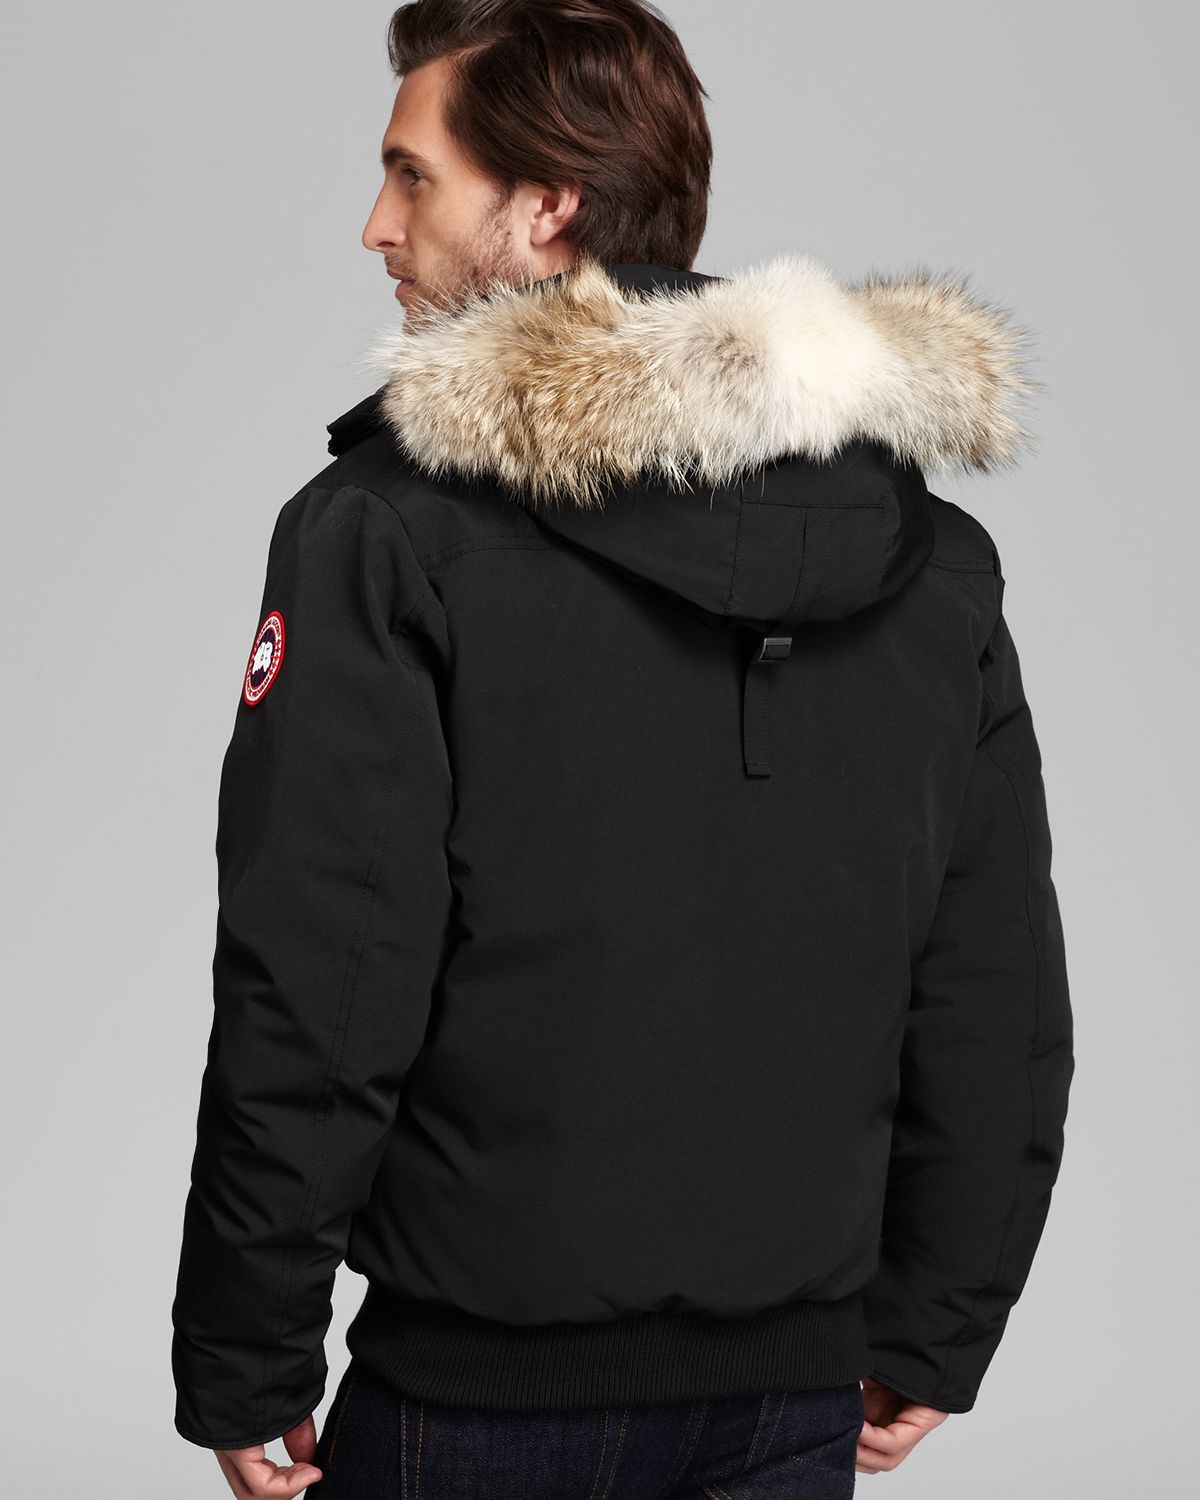 Canada Goose toronto outlet price - Canada goose Borden Bomber Parka With Fur Hood in Black for Men | Lyst